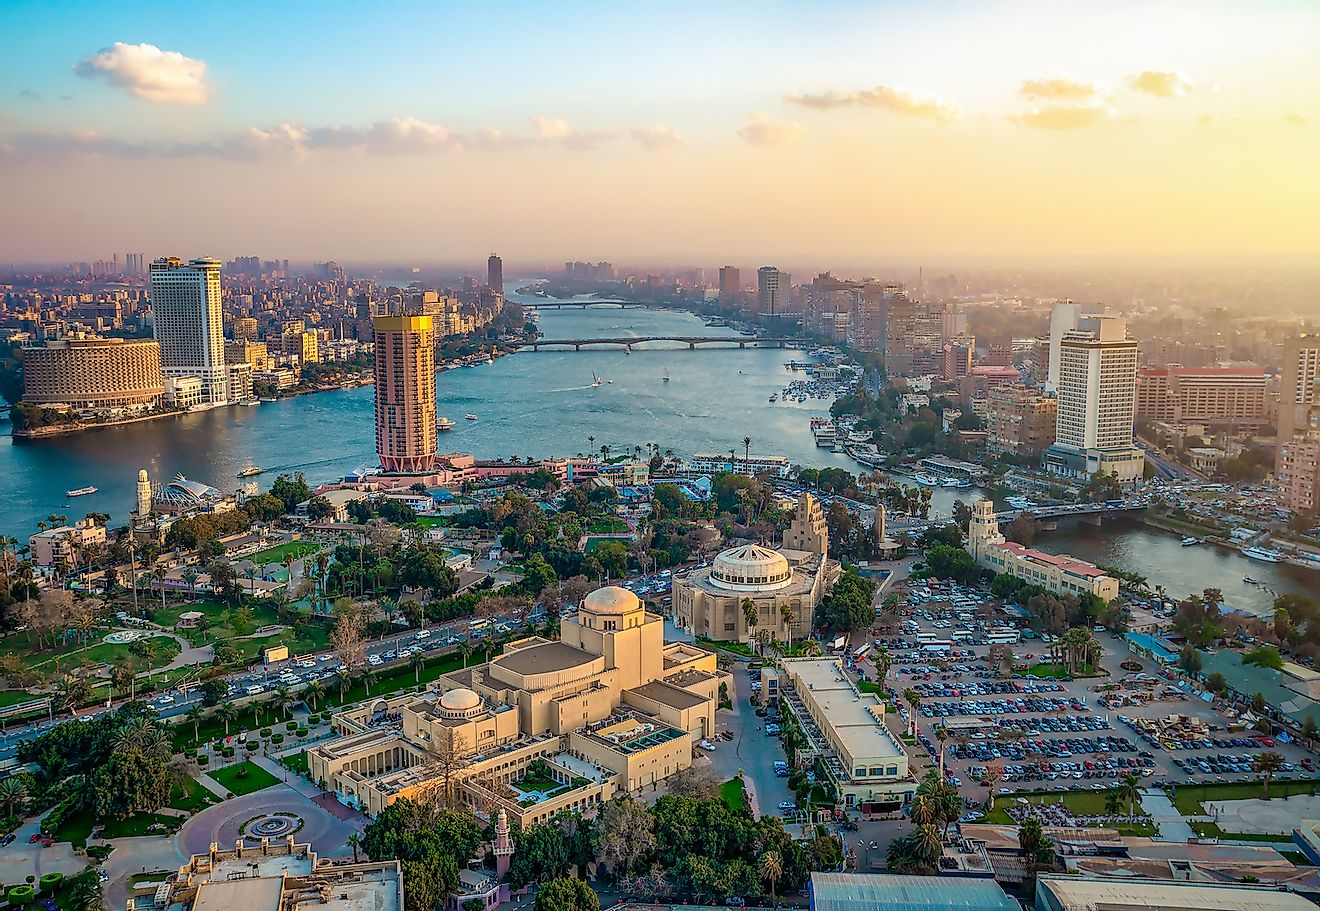 Panorama of Cairo cityscape taken during the sunset from the famous Cairo tower, Cairo, Egypt. Image credit: Givaga/Shutterstock.com